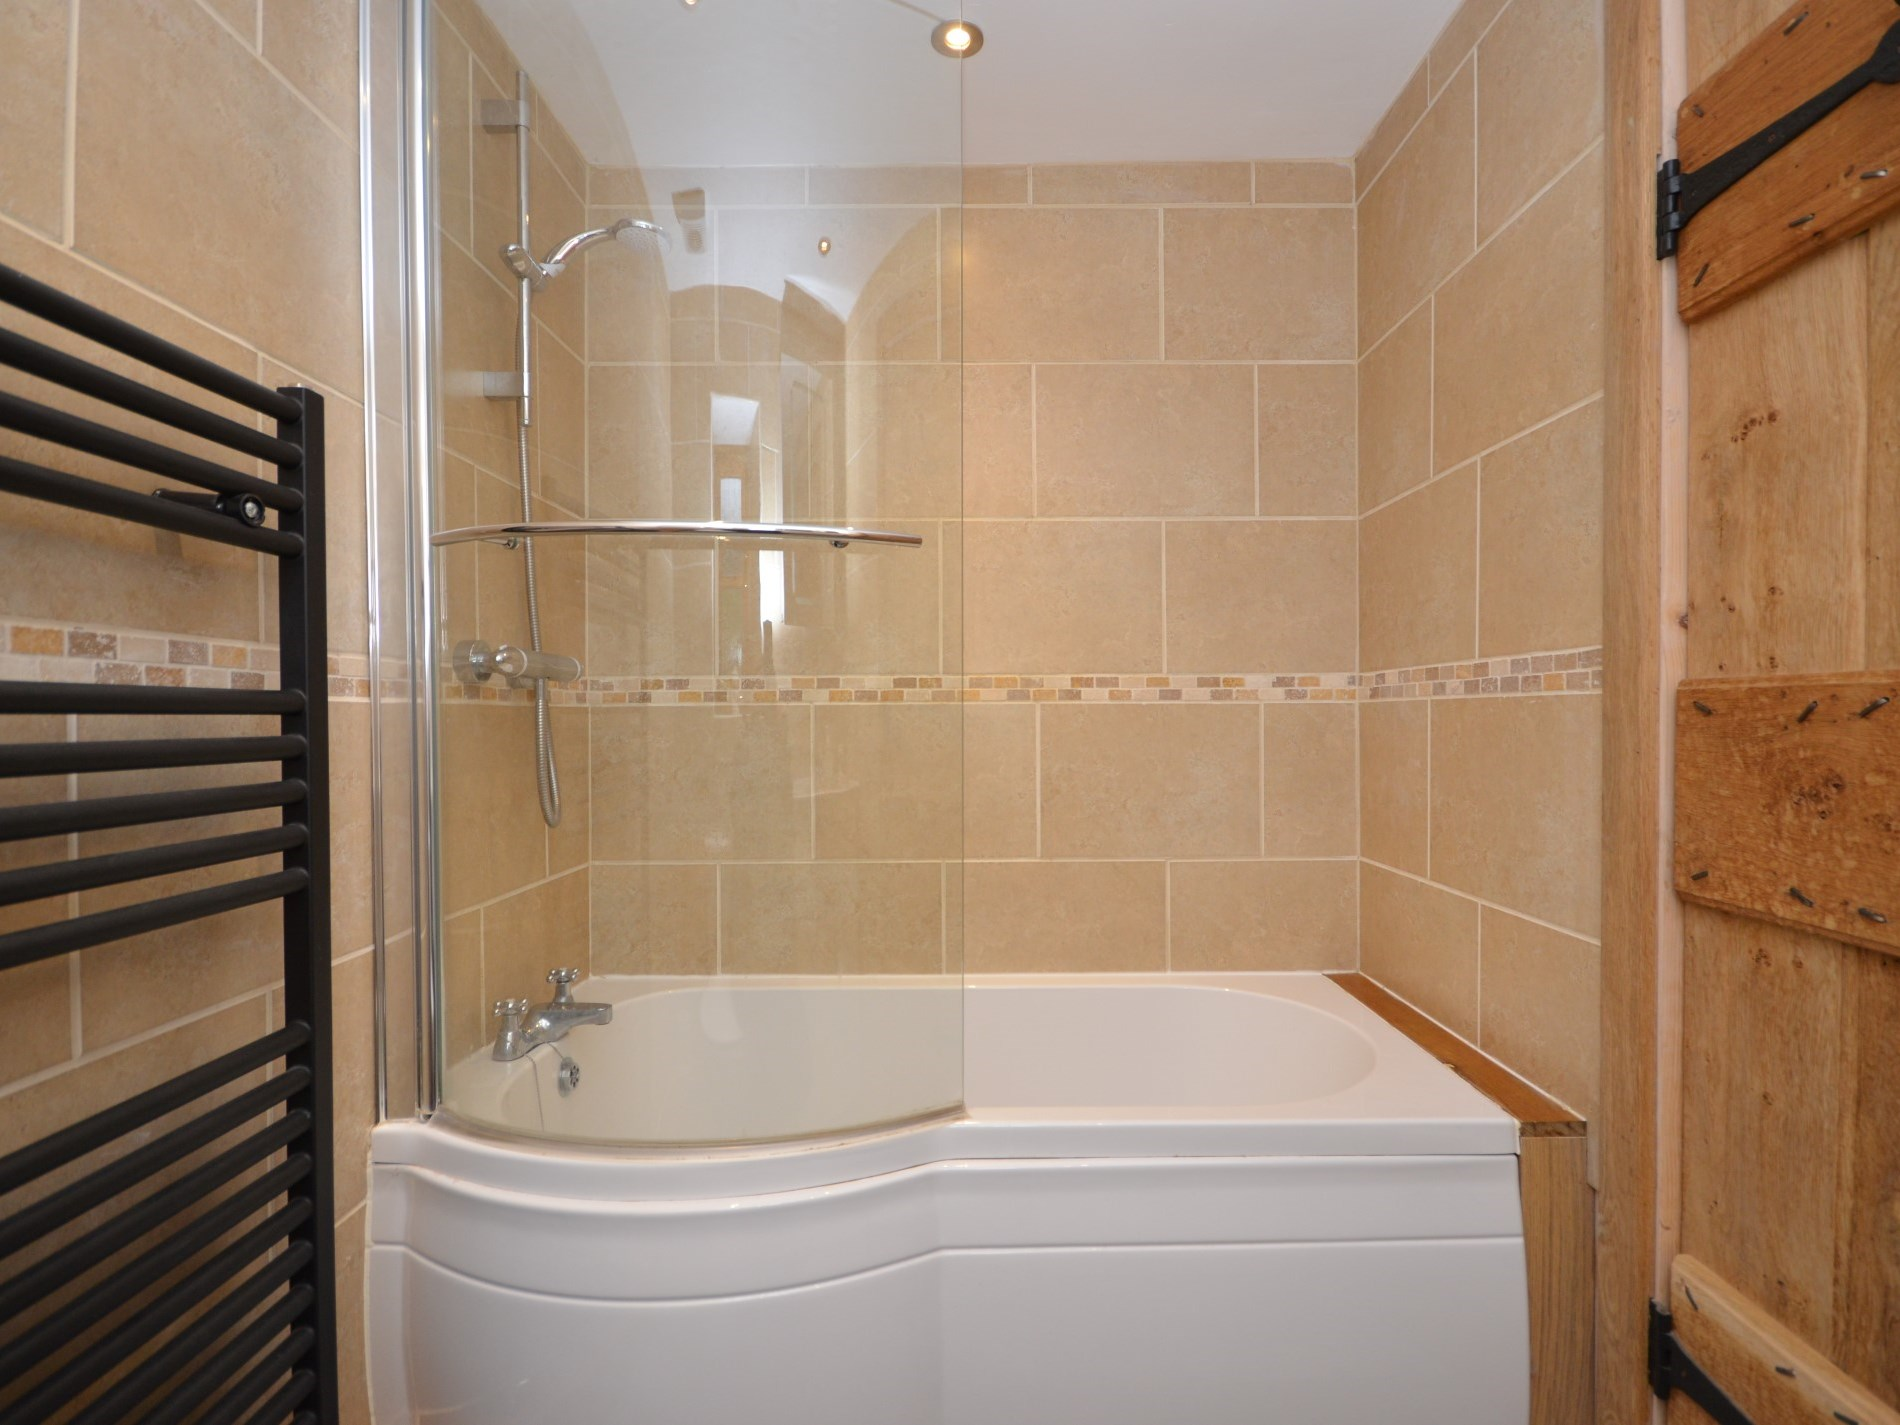 Downstairs bathroom with shower over